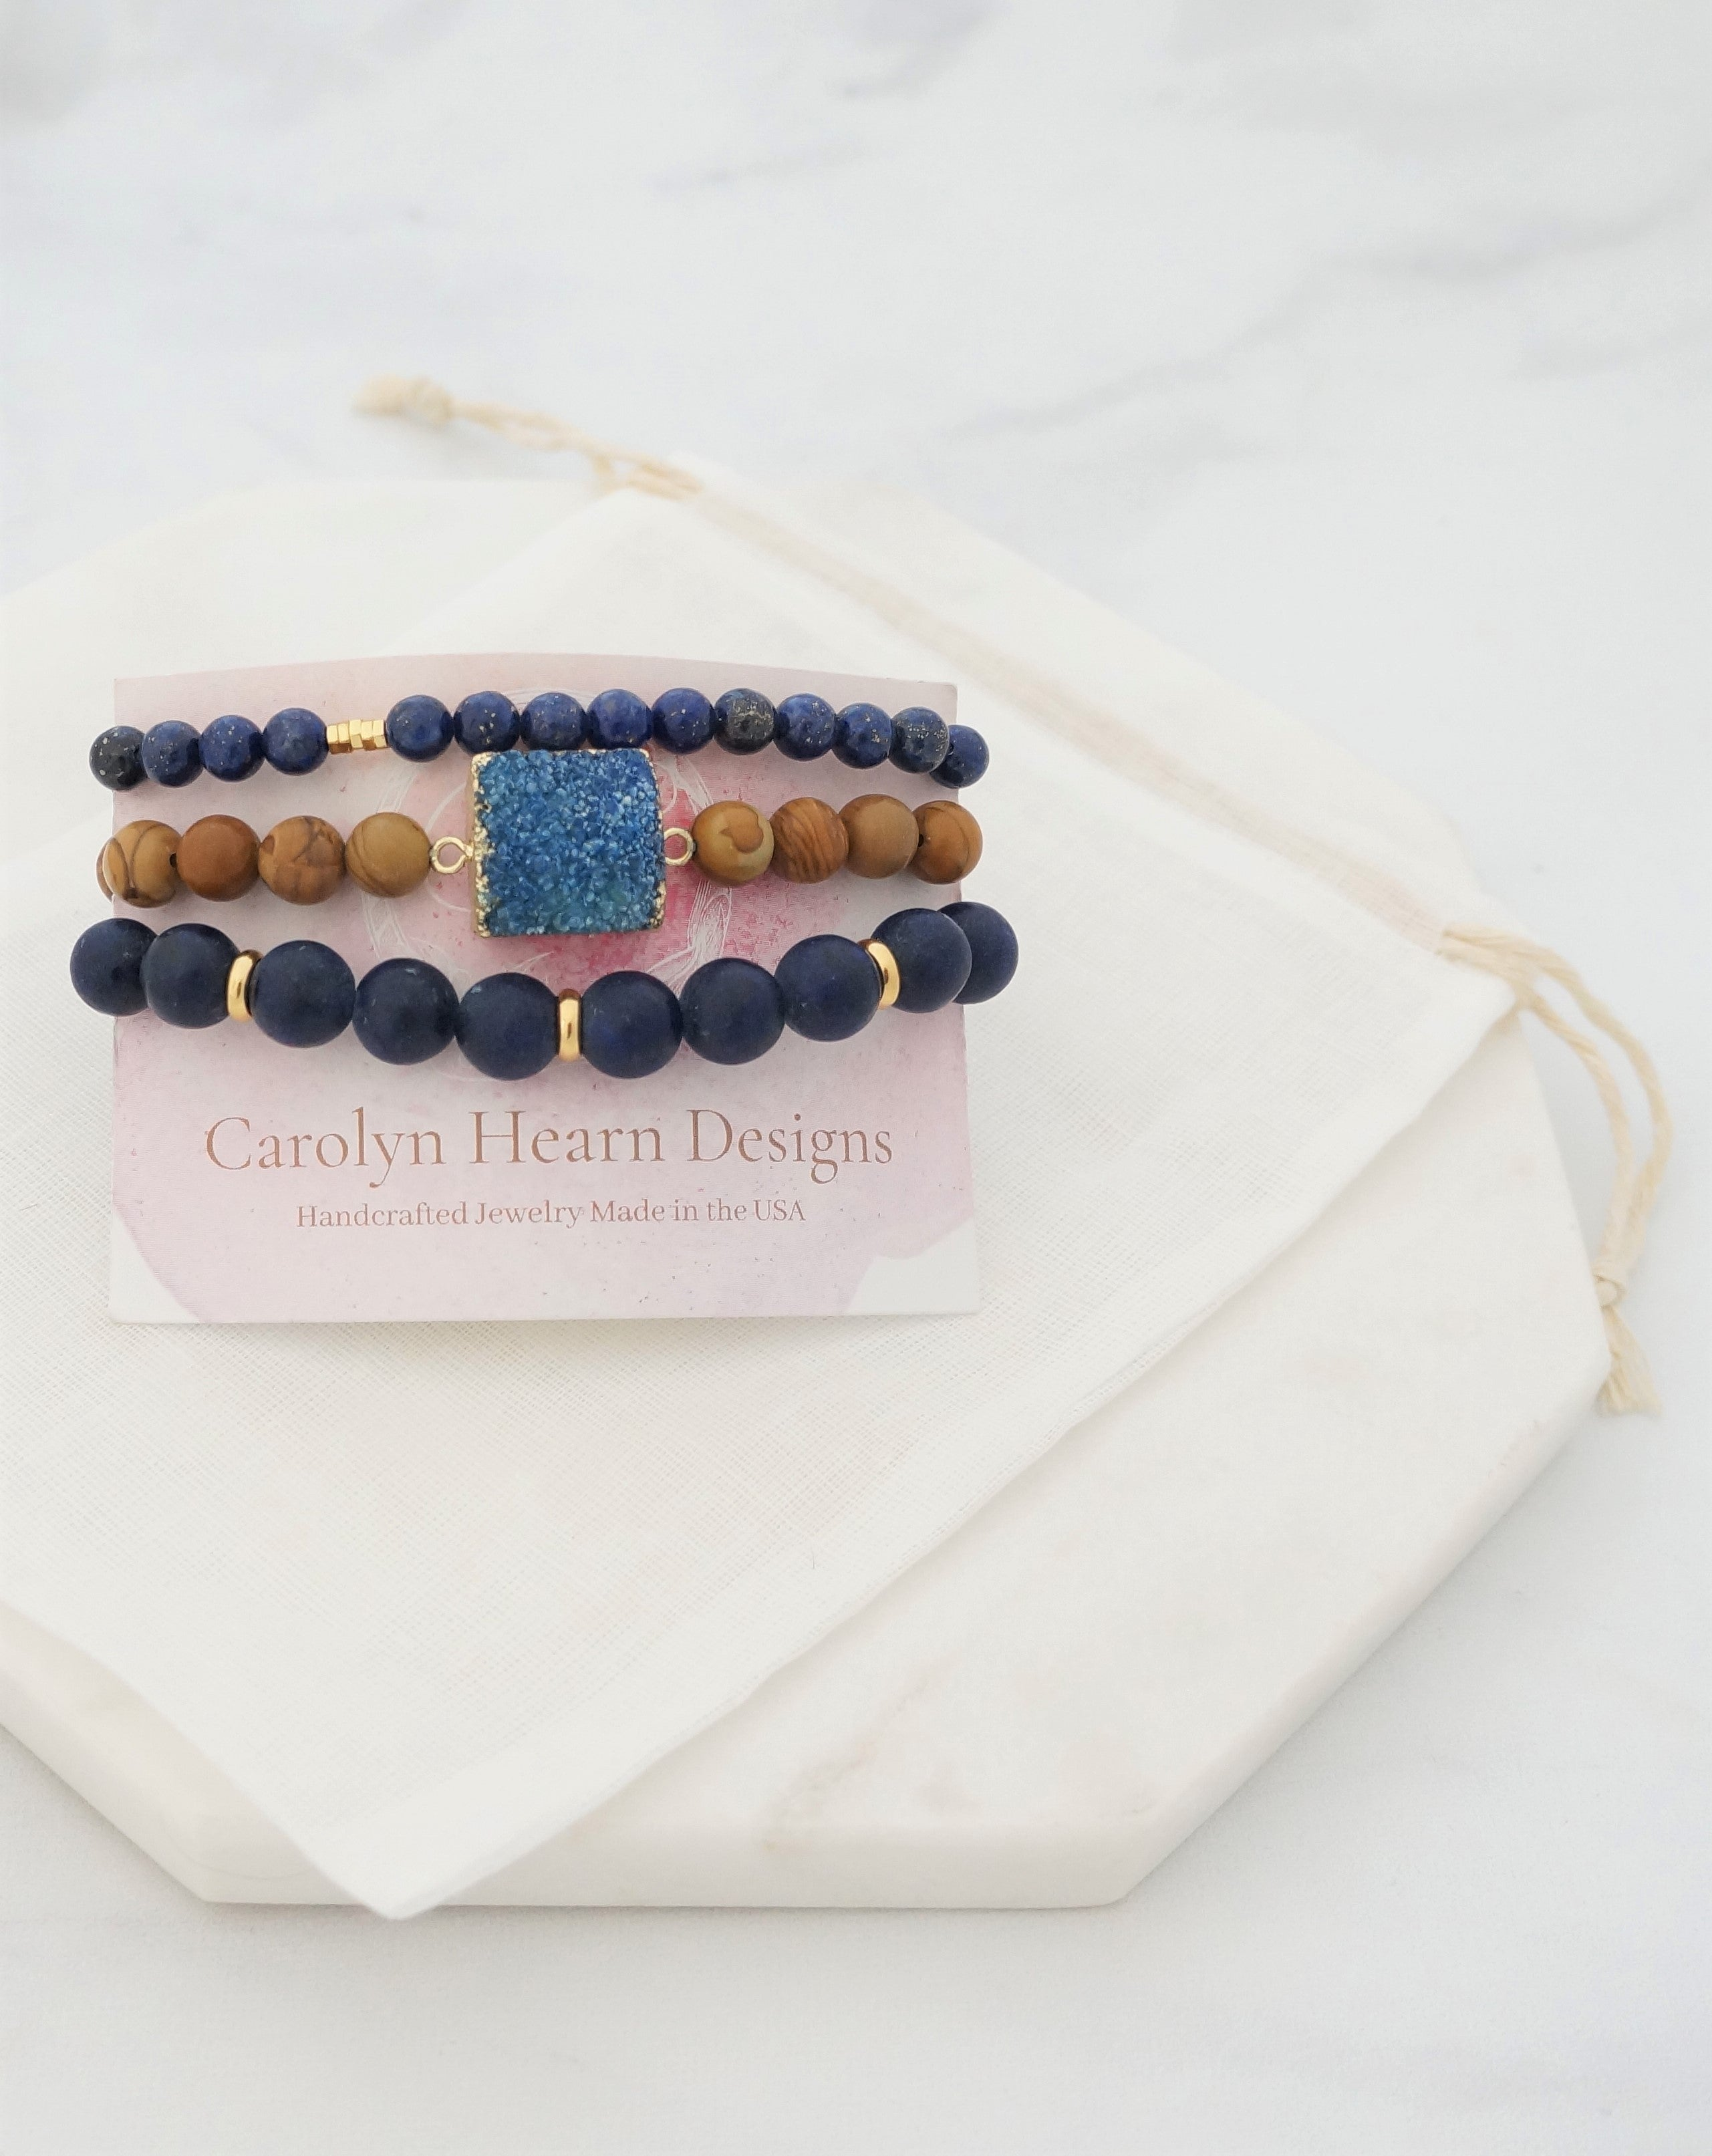 Wise Stack - Carolyn Hearn Designs